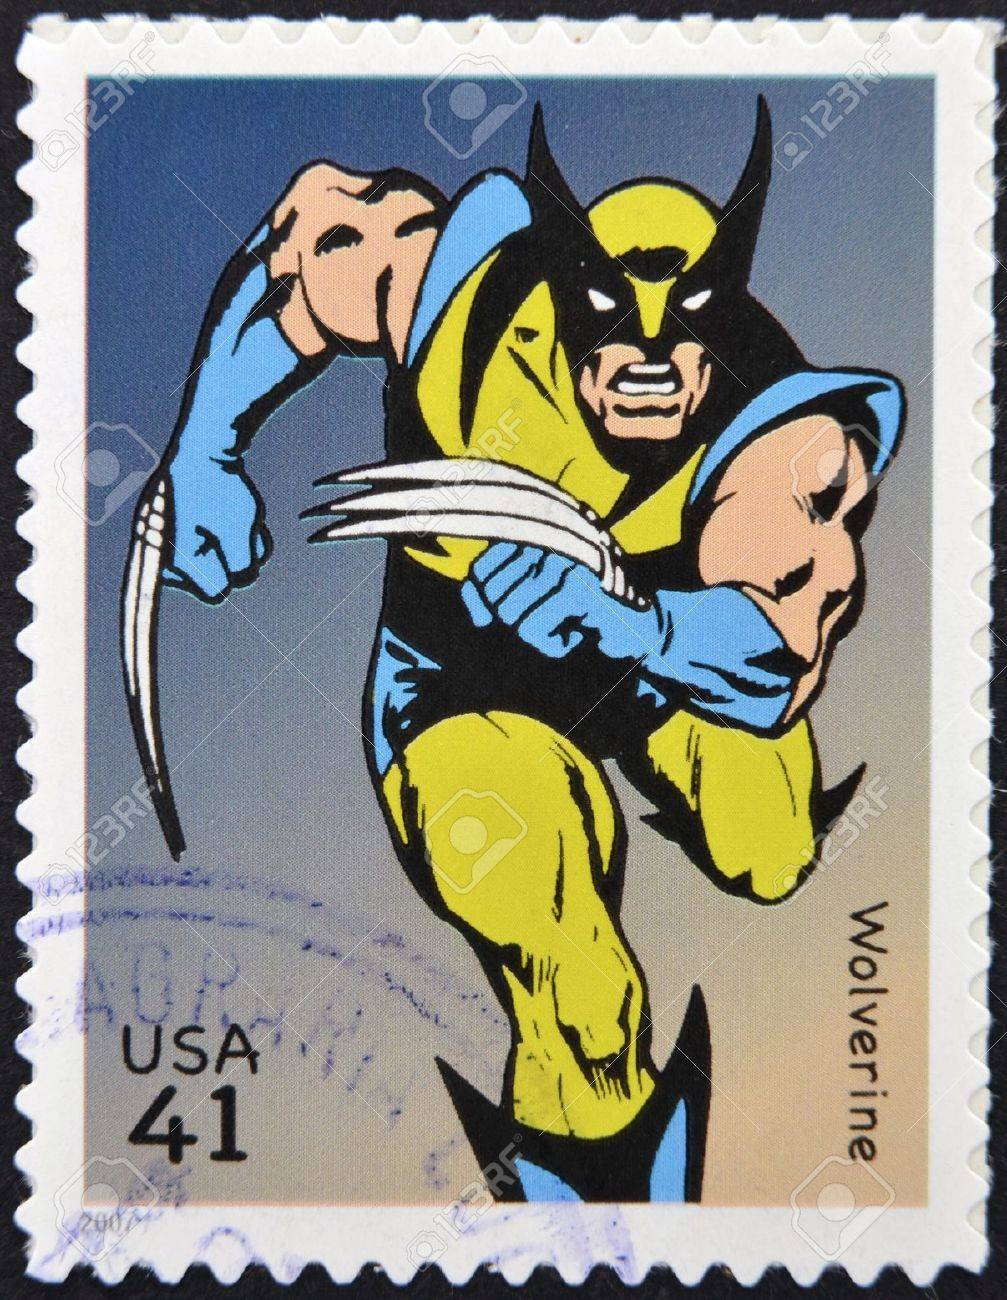 UNITED STATES OF AMERICA - CIRCA 2007: A stamp printed in USA shows Wolverine, circa 2007  Stock Photo - 13289435